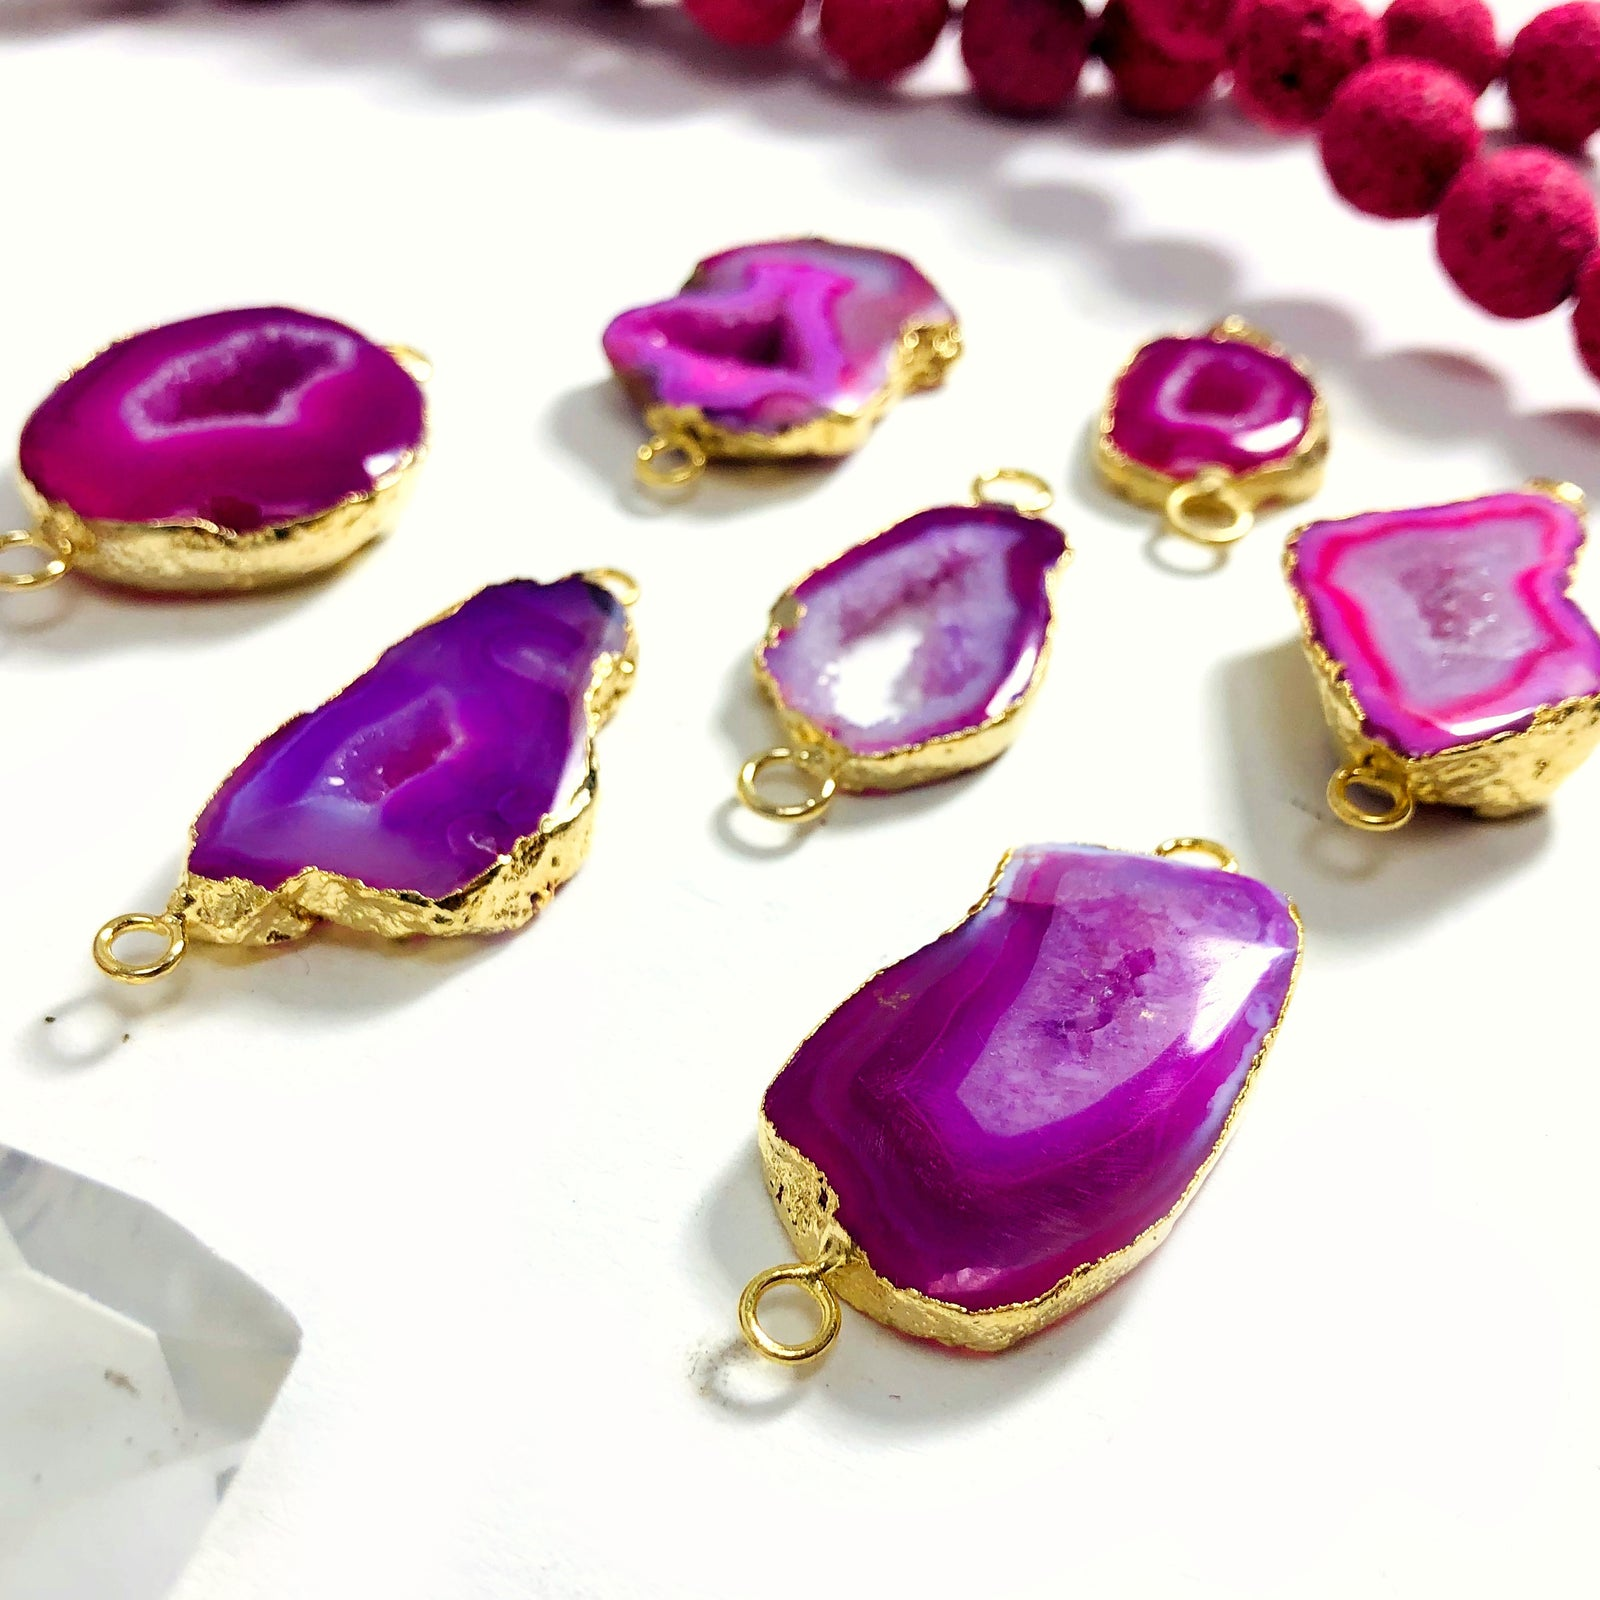 Pink Agate Druzy Connector Pendant in Electroplated 24k Gold Edge (S52B27b-13)